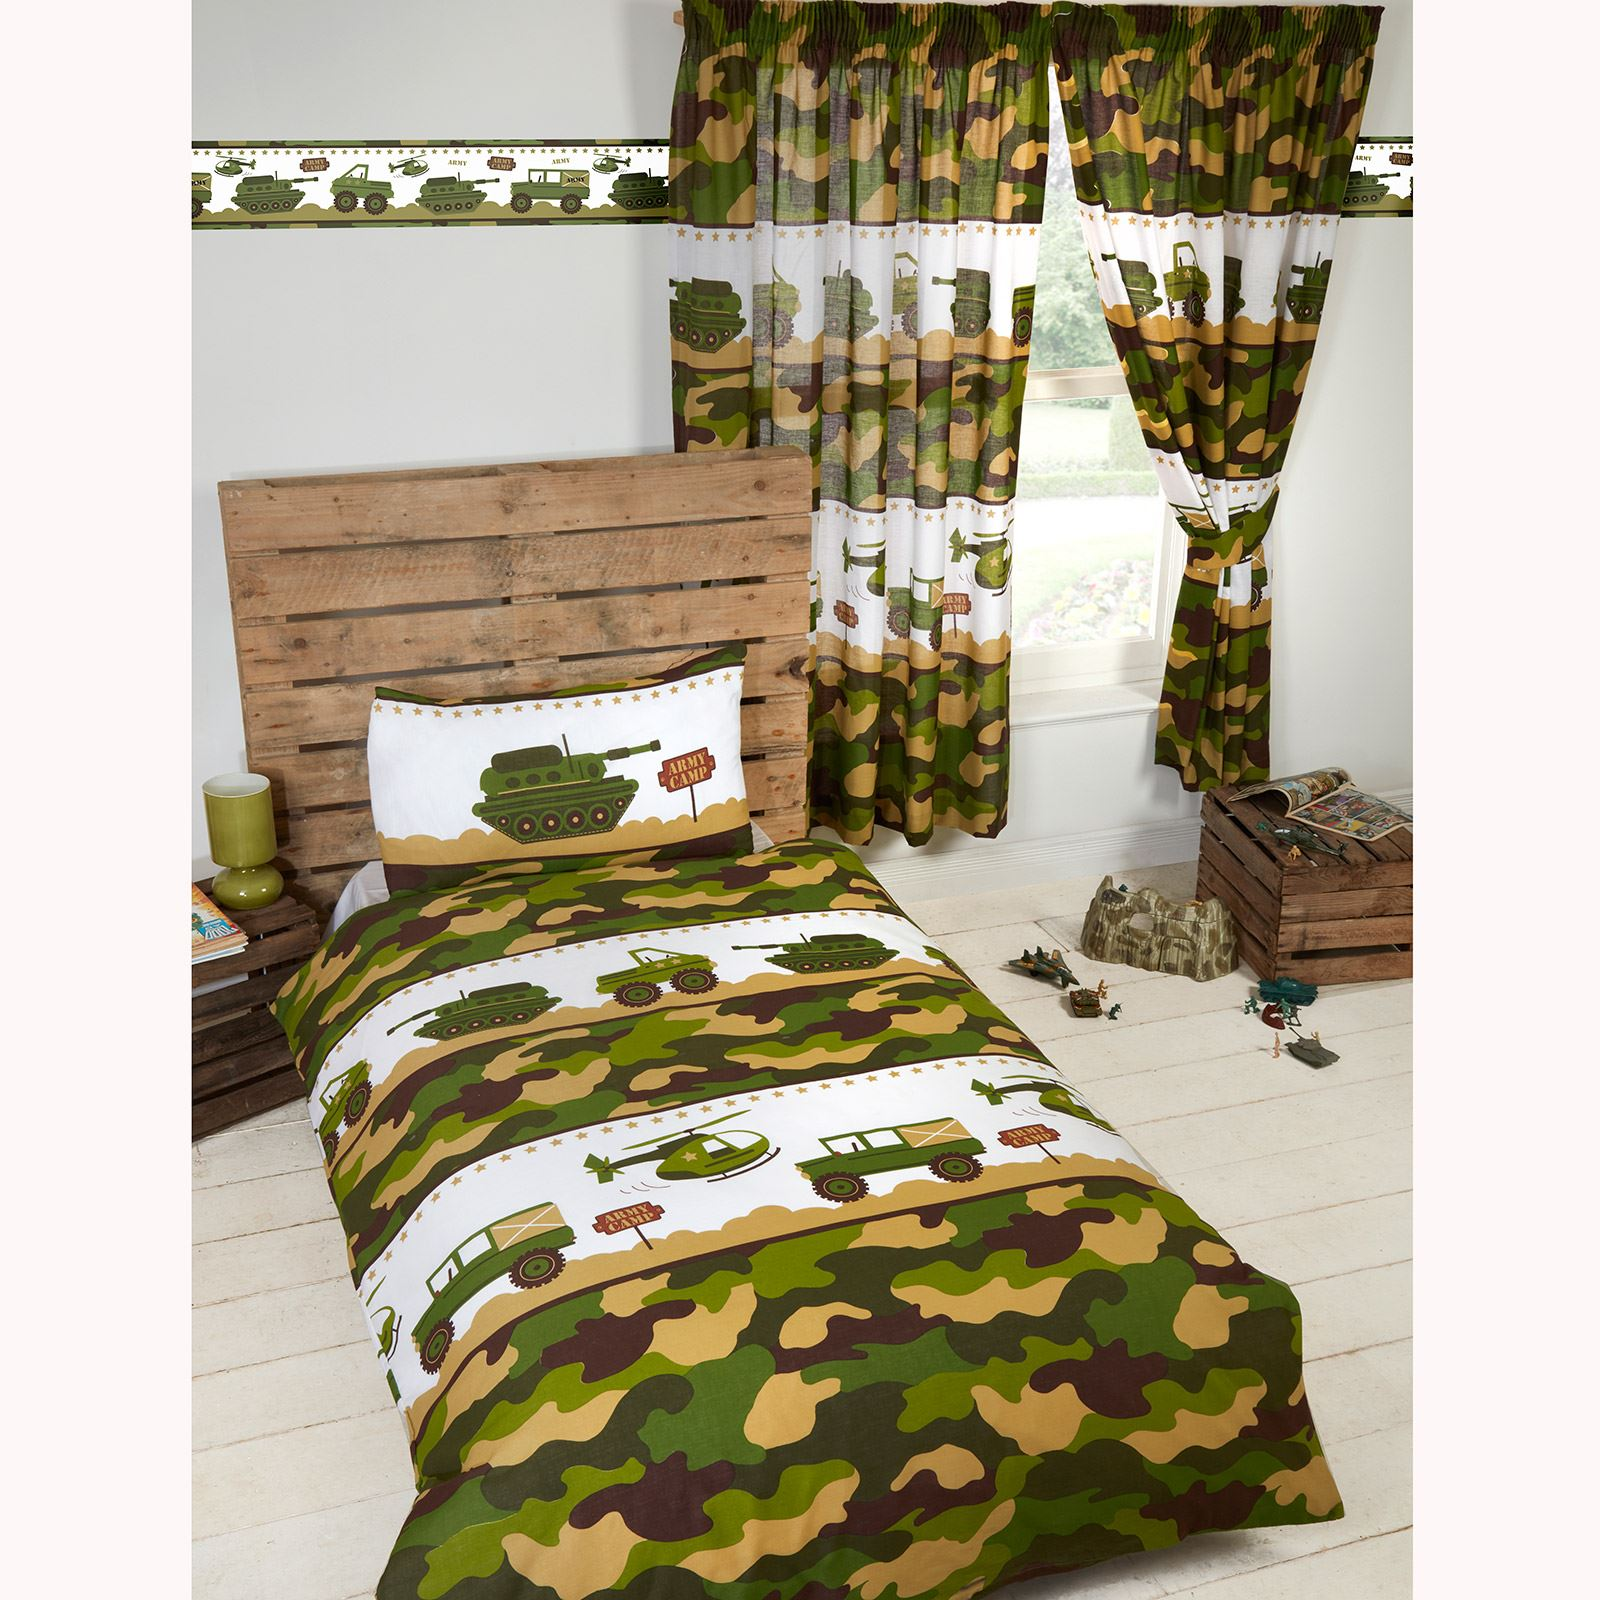 "ARMY CAMP CAMO JUNIOR DUVET COVER SET MATCHING 72"" CURTAINS KIDS"